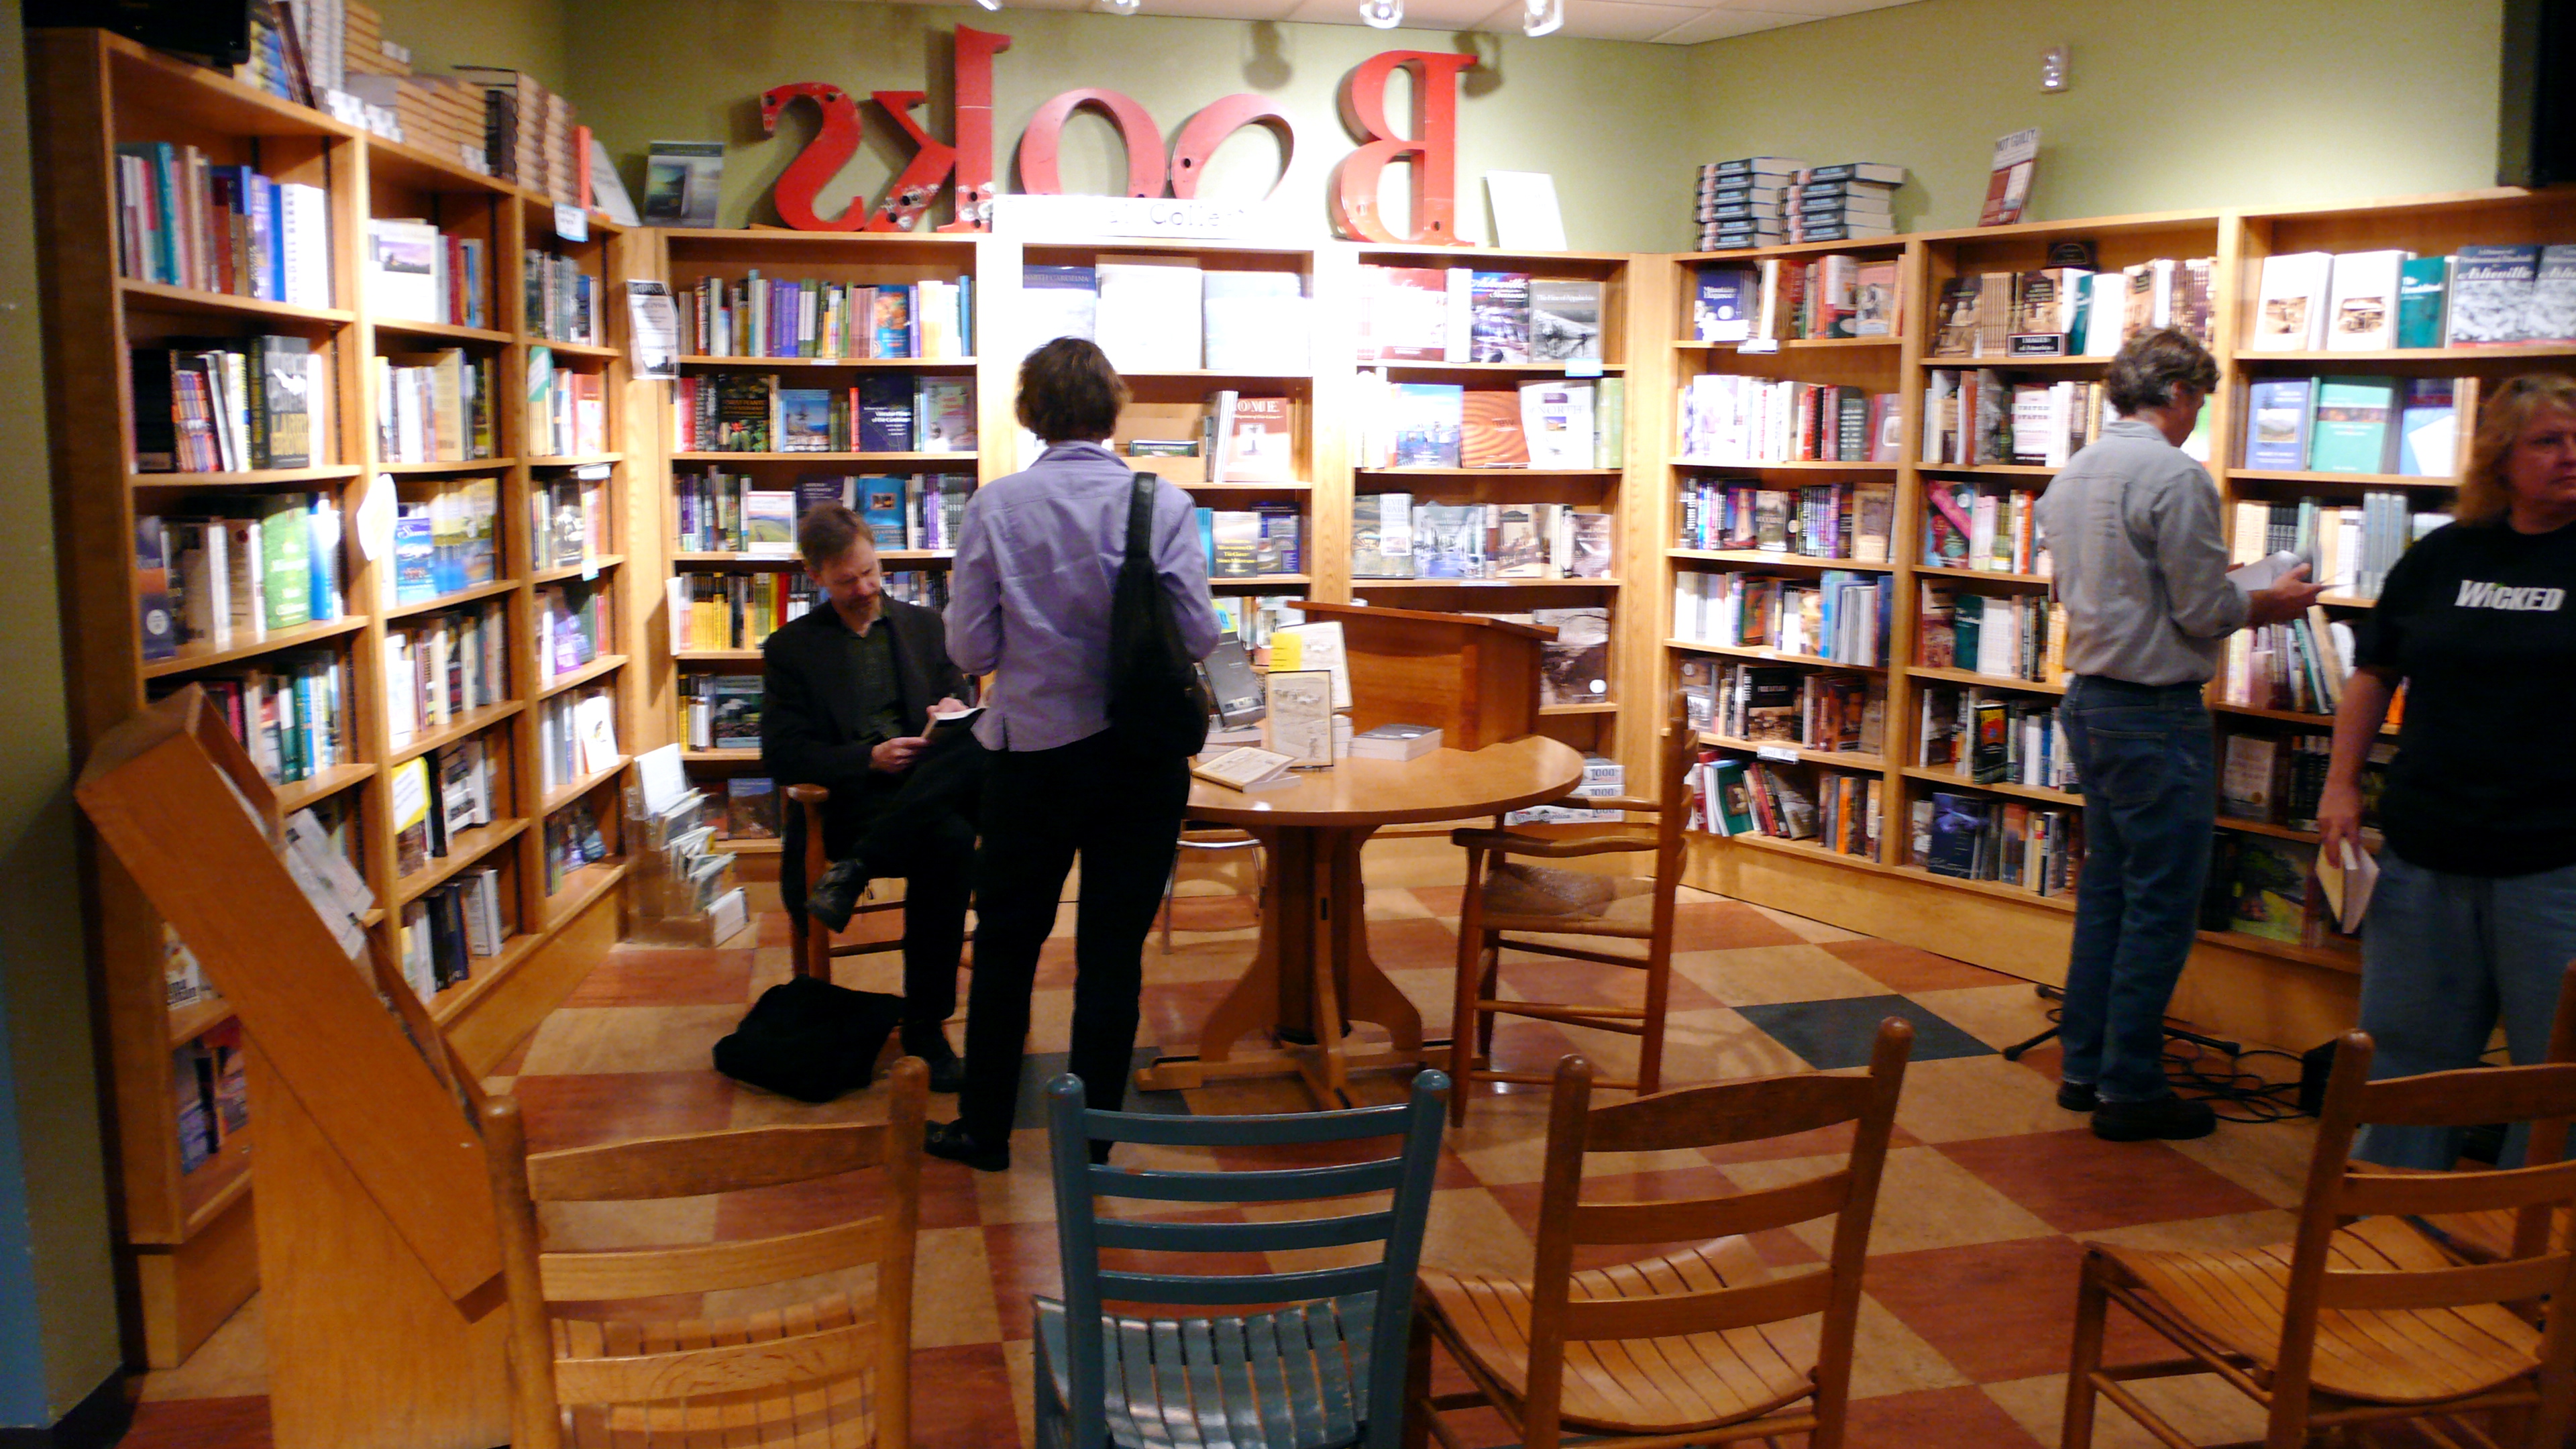 Ashvegas 2016 Year in Review: Bestselling books at Malaprop's in Asheville